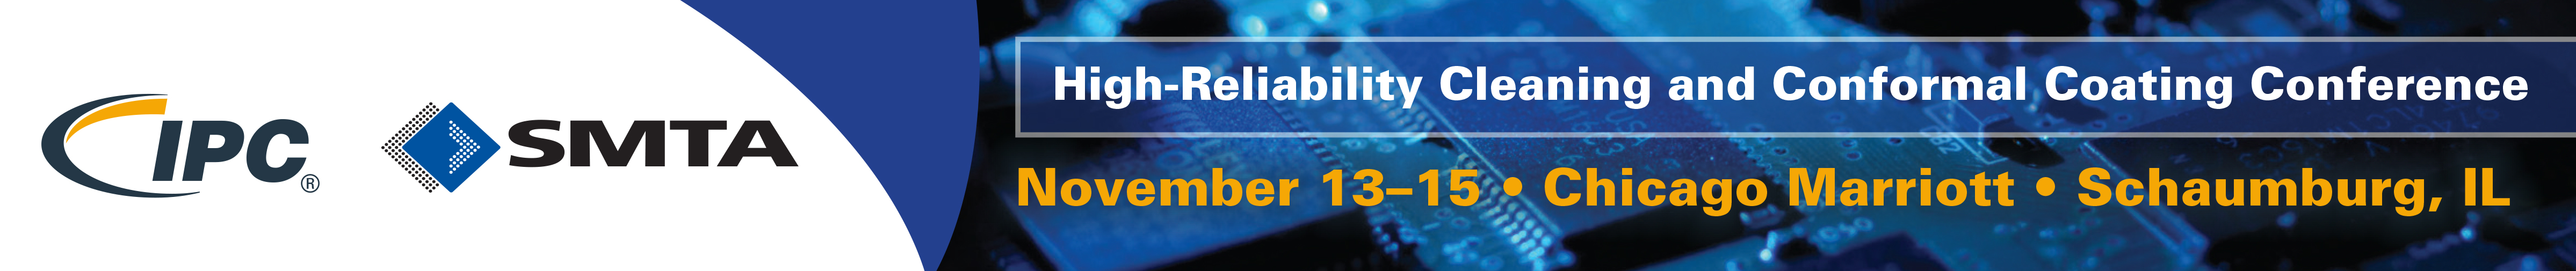 IPC and SMTA High-Reliability Cleaning & Conformal Coating Conference